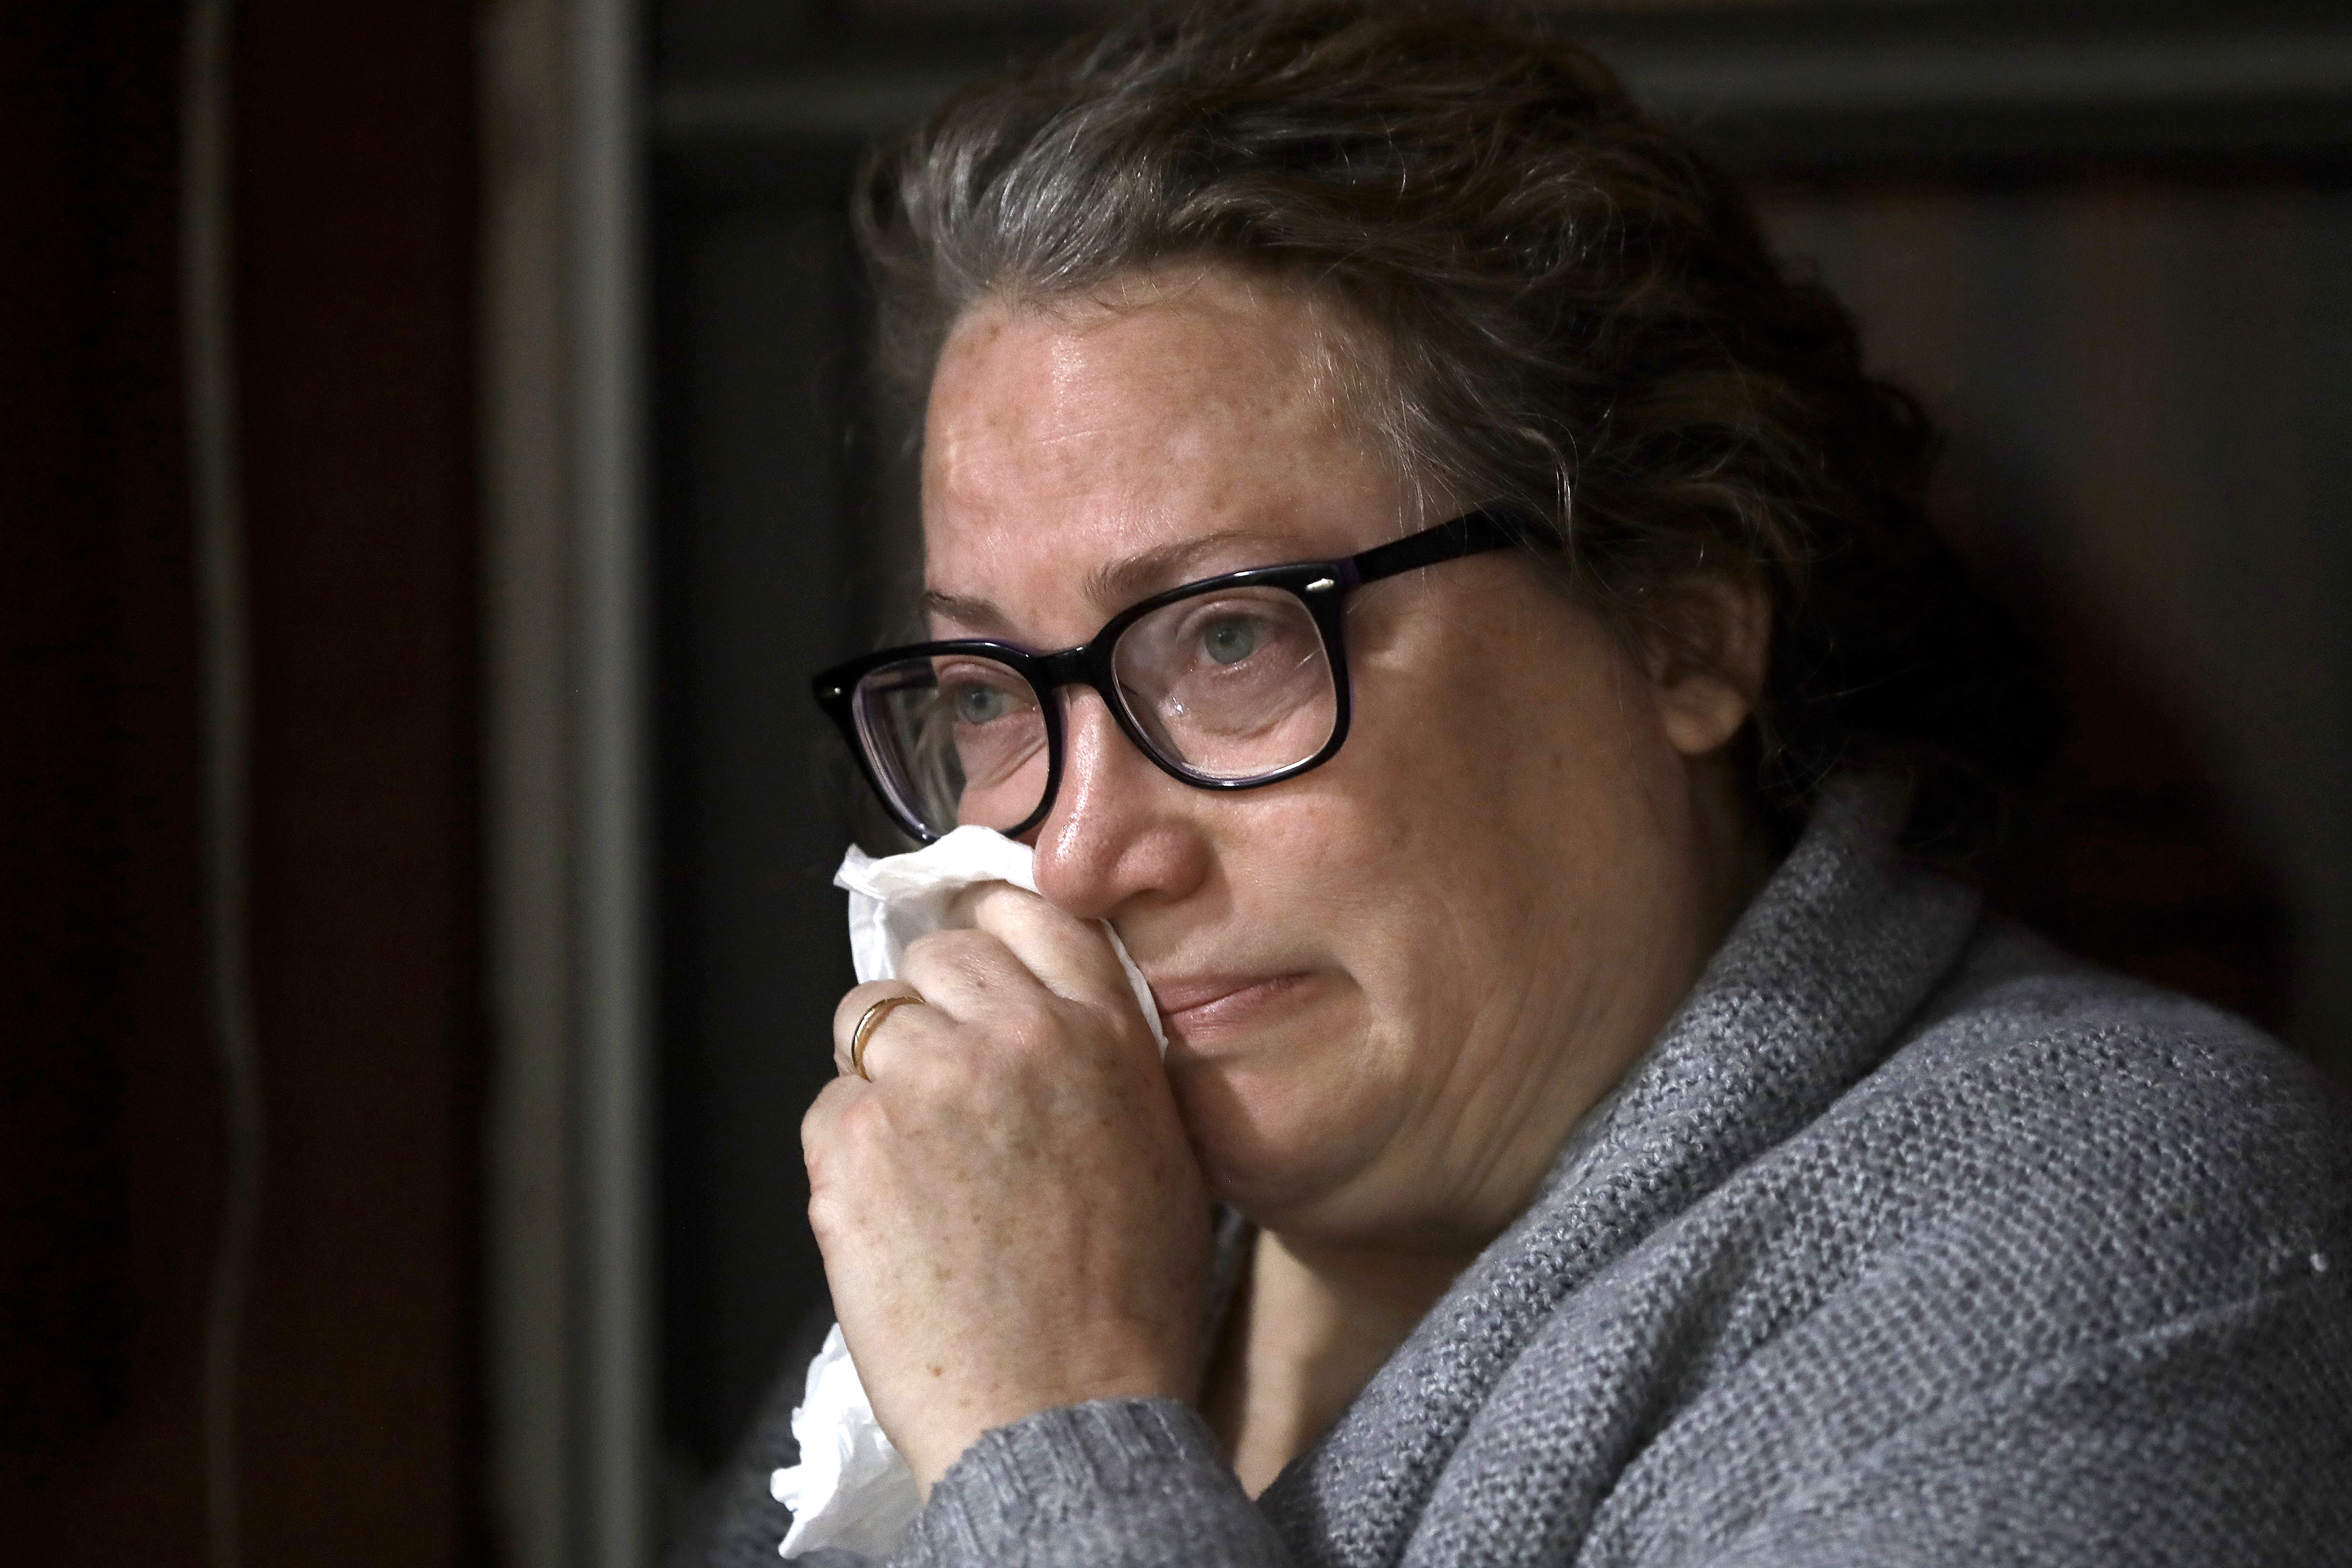 Susan Kenney, of Ware, Mass., who lost her father to the coronavirus, is tearful while speaking to a reporter from The Associated Press on the front porch of her home, Thursday, April 30, 2020, in Ware.